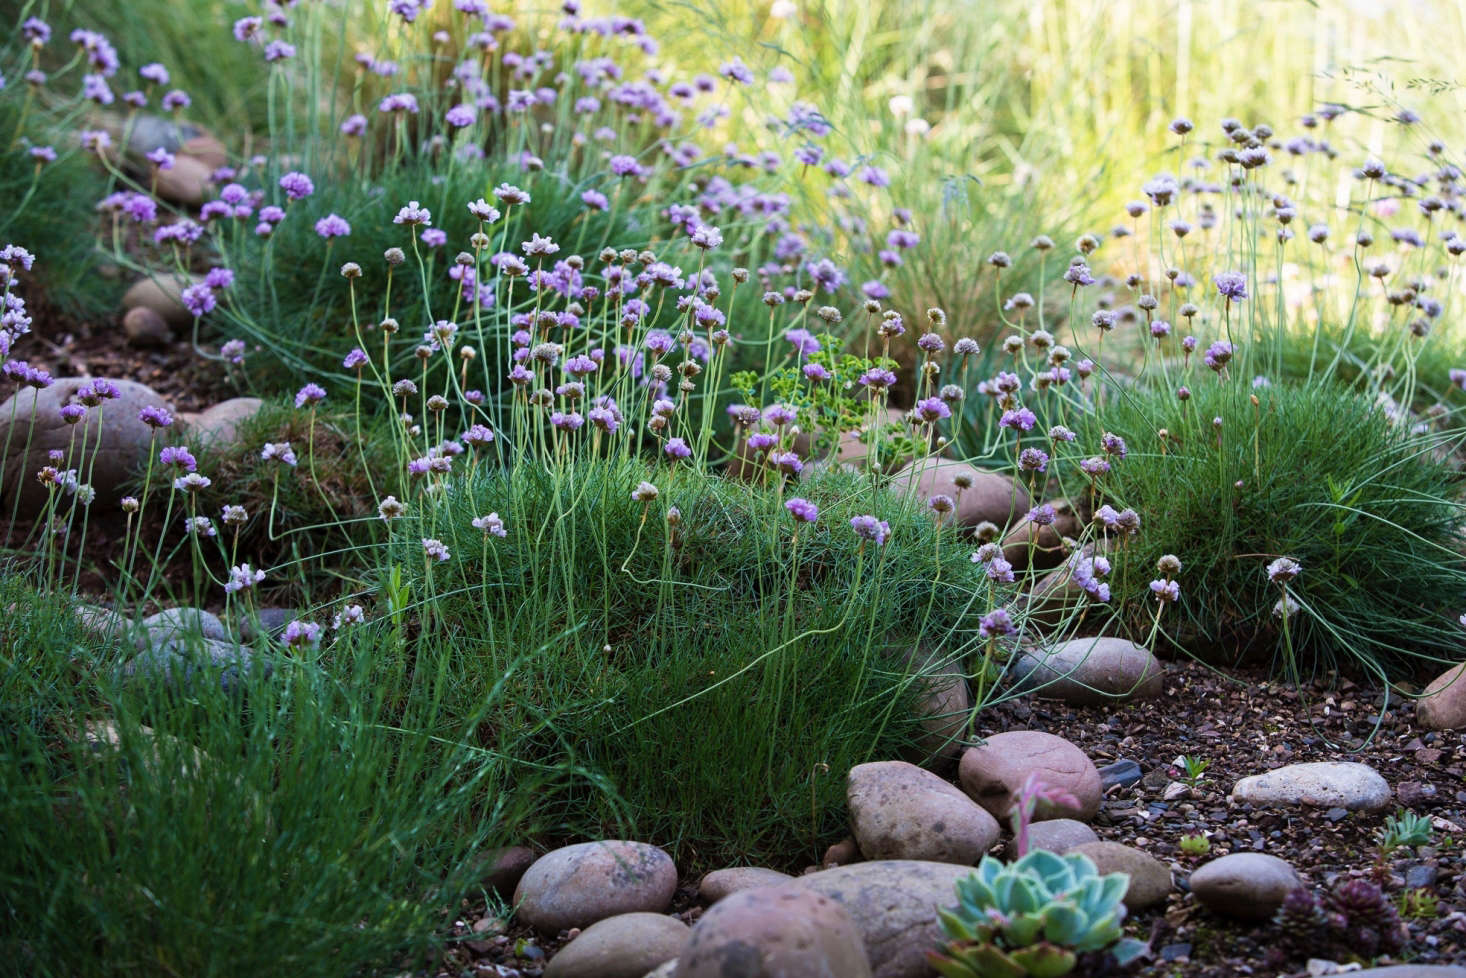 Sea thrift (Armeria maritima) forms helpful mats of ground cover on this slope. Photography by Claire Takacs, from Can This Garden Be Saved: &#8